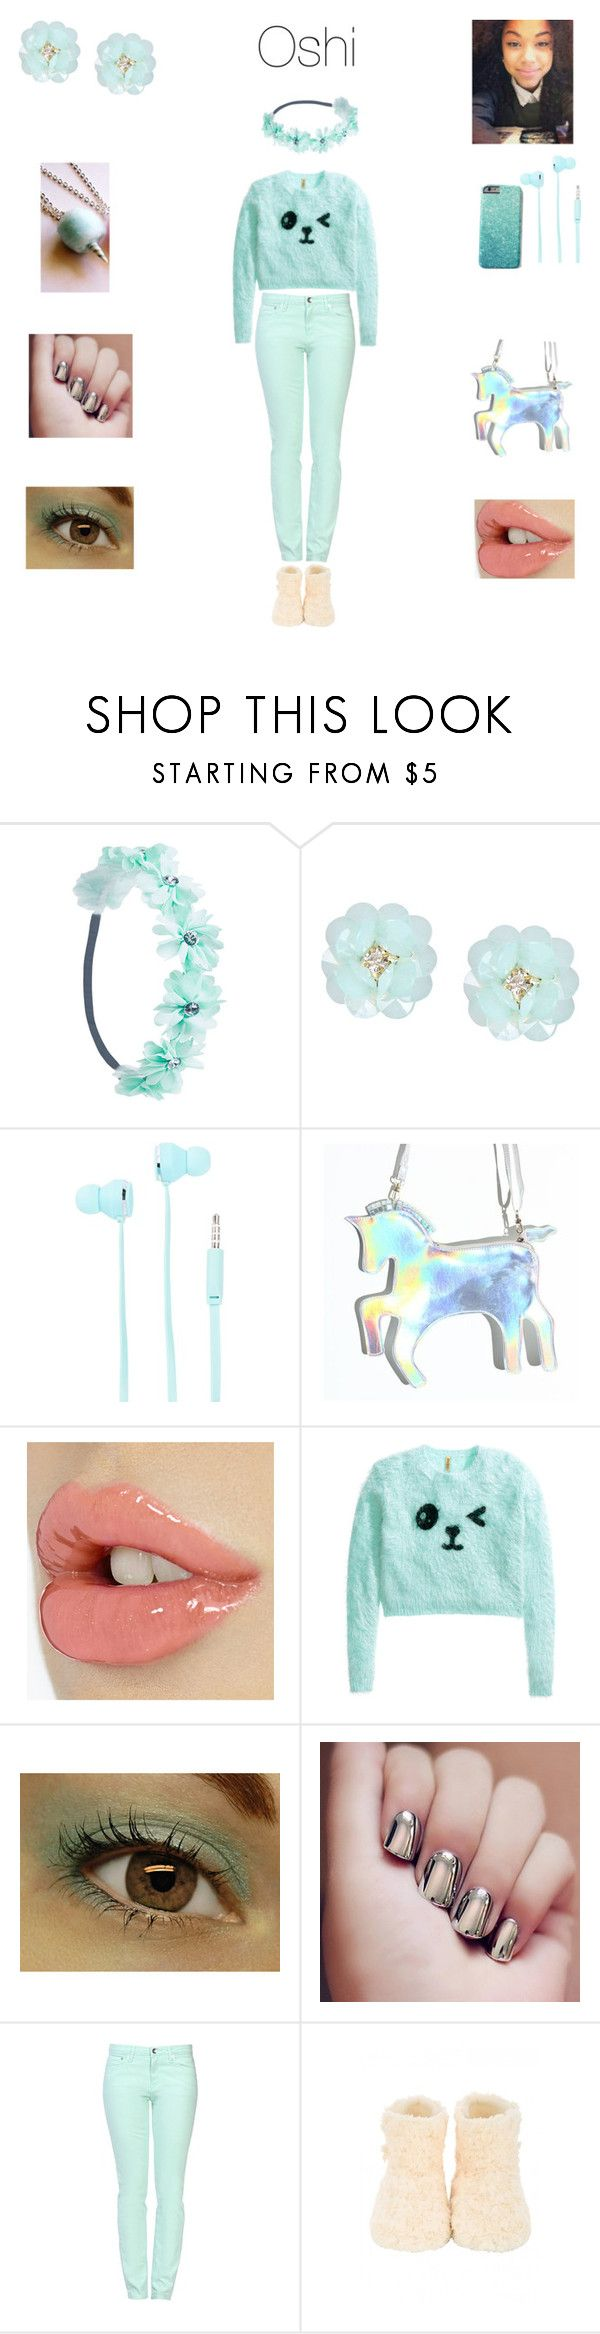 """Yosei Ojo 3"" by neoncupcakes23 ❤ liked on Polyvore featuring Wet Seal, Dettagli, Merkury Innovations, H&M and Love Moschino"